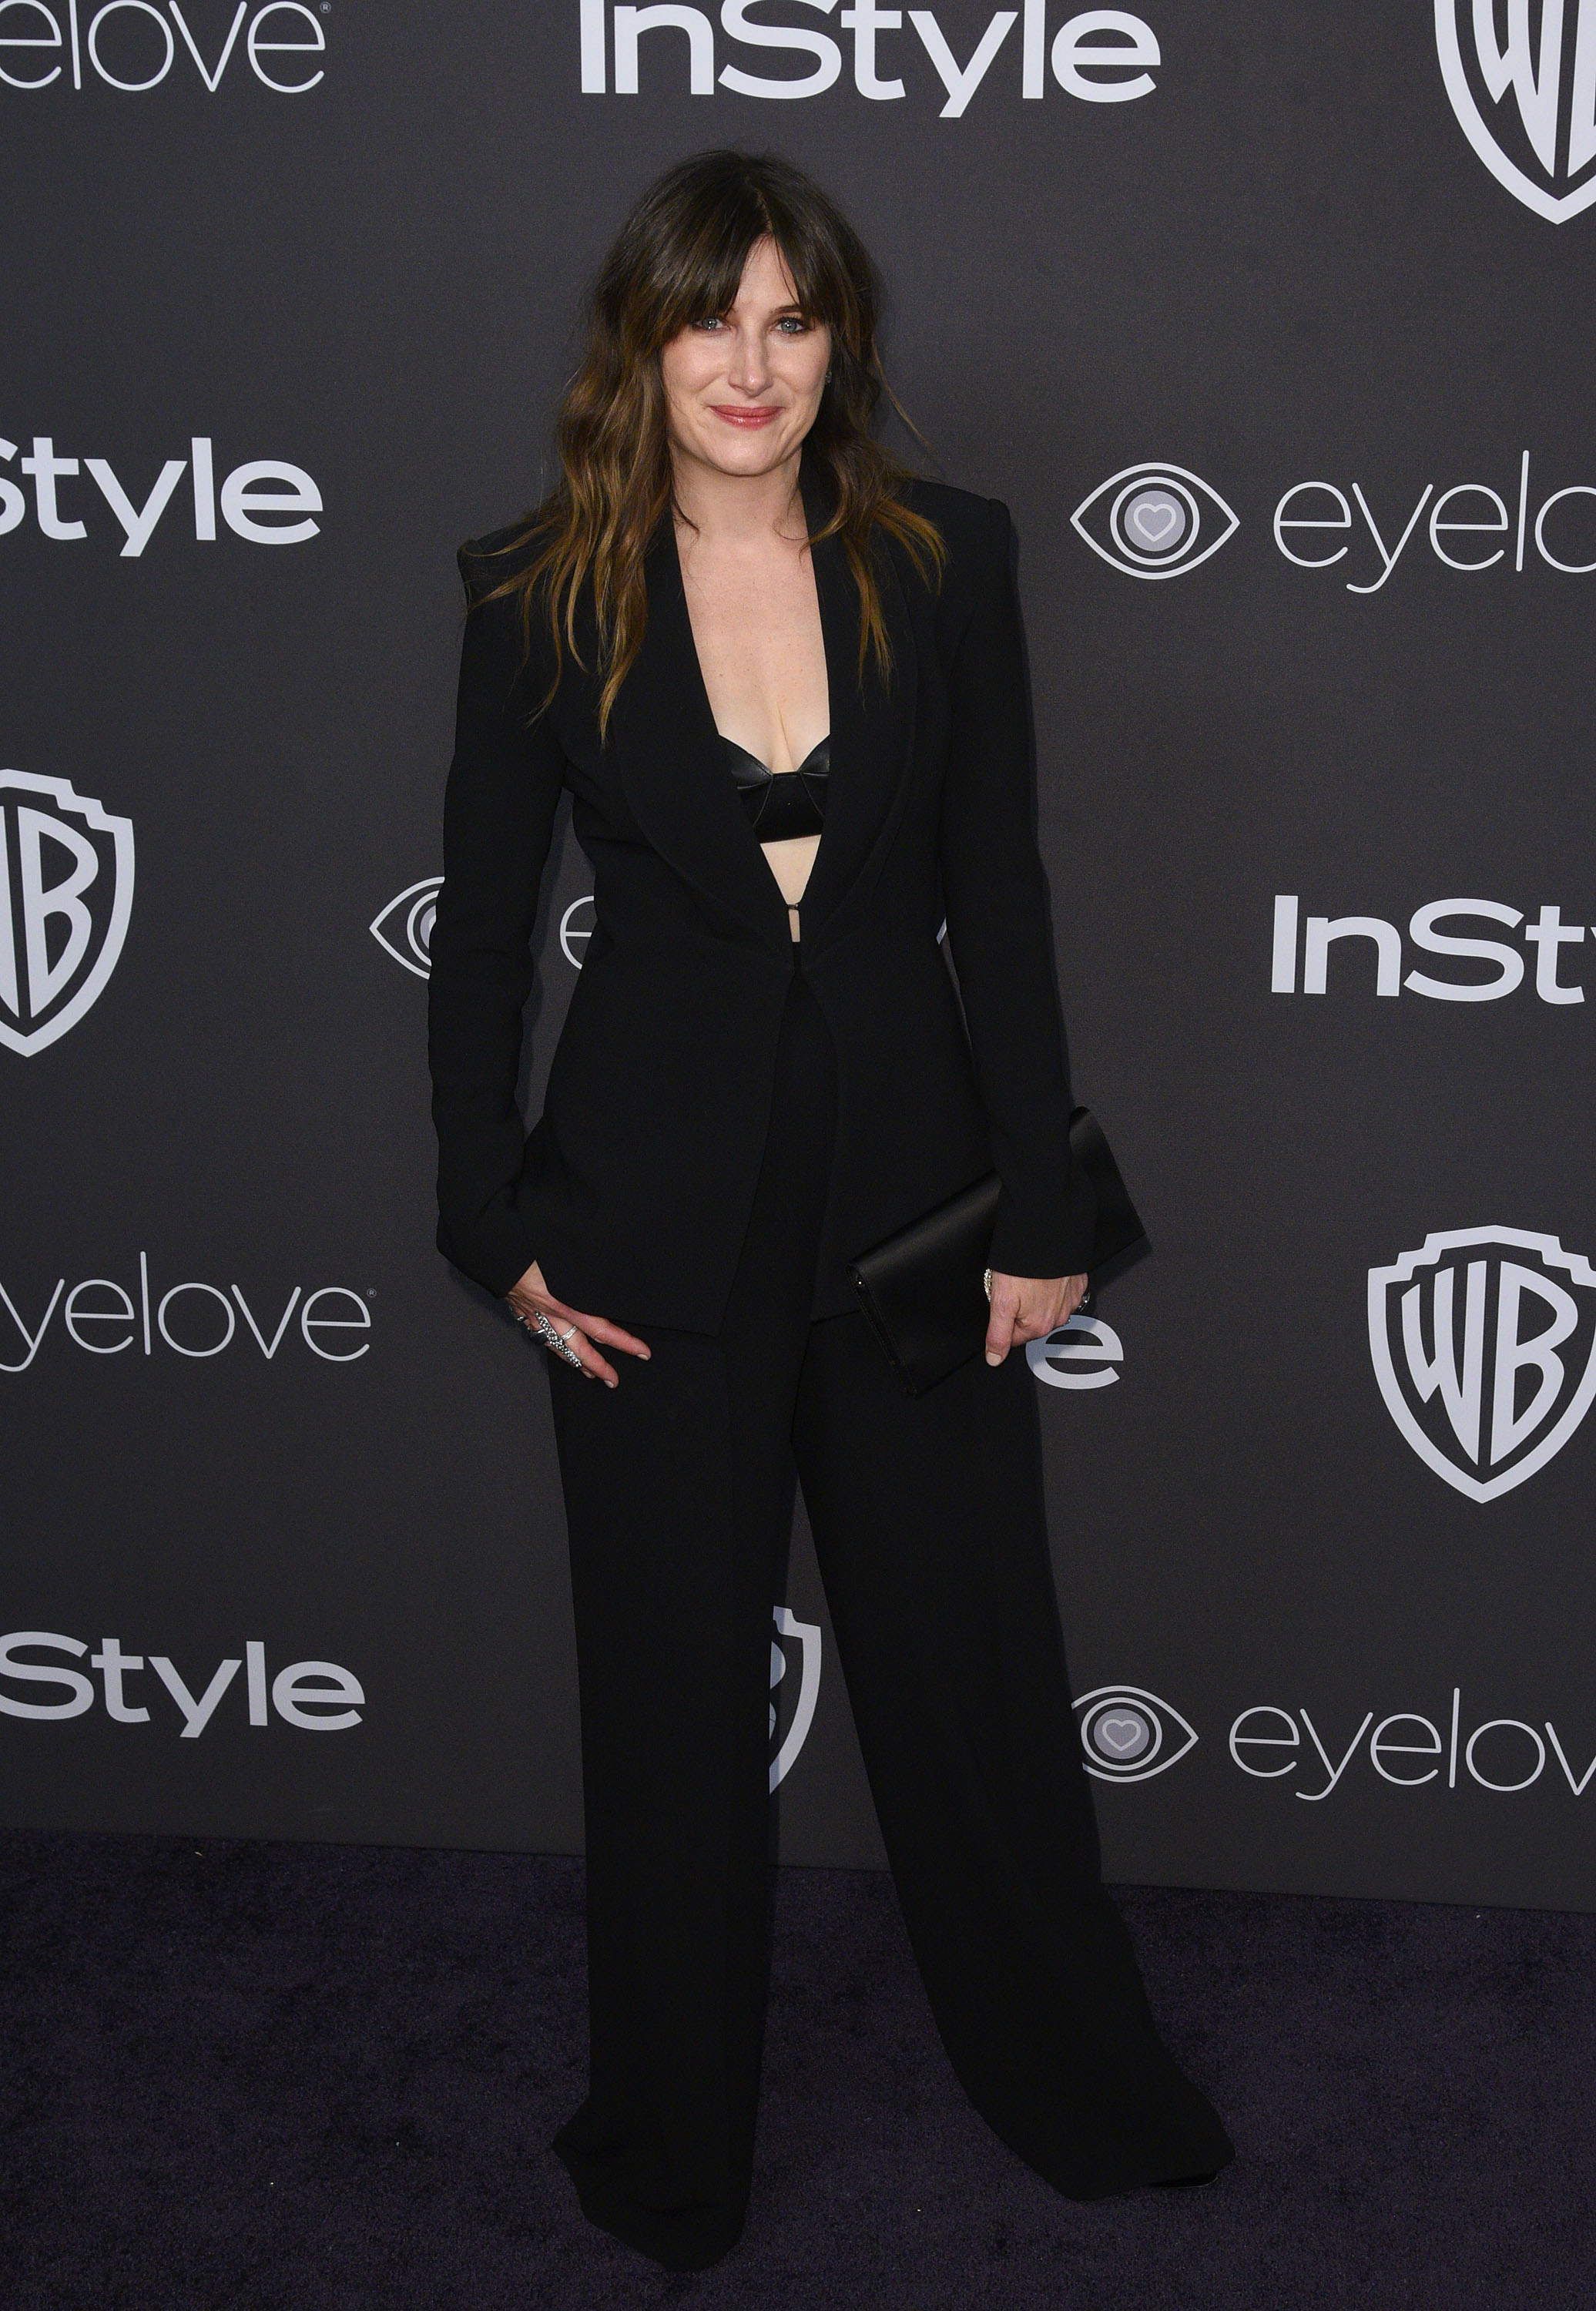 BEVERLY HILLS, CA - JANUARY 08: Actress Kathryn Hahn attends the 18th Annual Post-Golden Globes Party hosted by Warner Bros. Pictures and InStyle at The Beverly Hilton Hotel on January 8, 2017 in Beverly Hills, California. (Photo by C Flanigan/Getty Images)